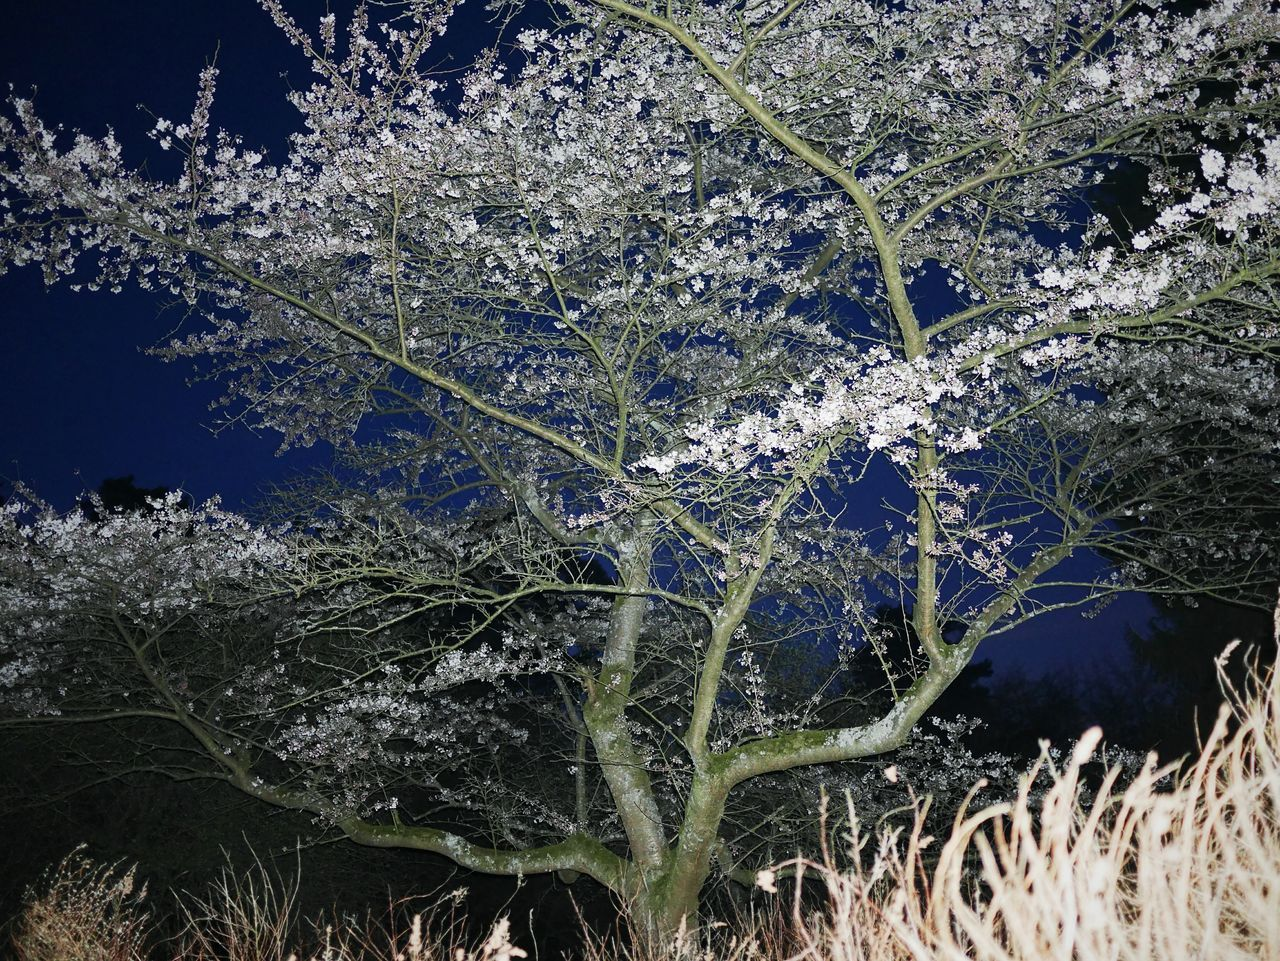 Bokrijk Arboretum Beauty In Nature Nature No People Tree Outdoors Blossom Nightphotography Spring Flash